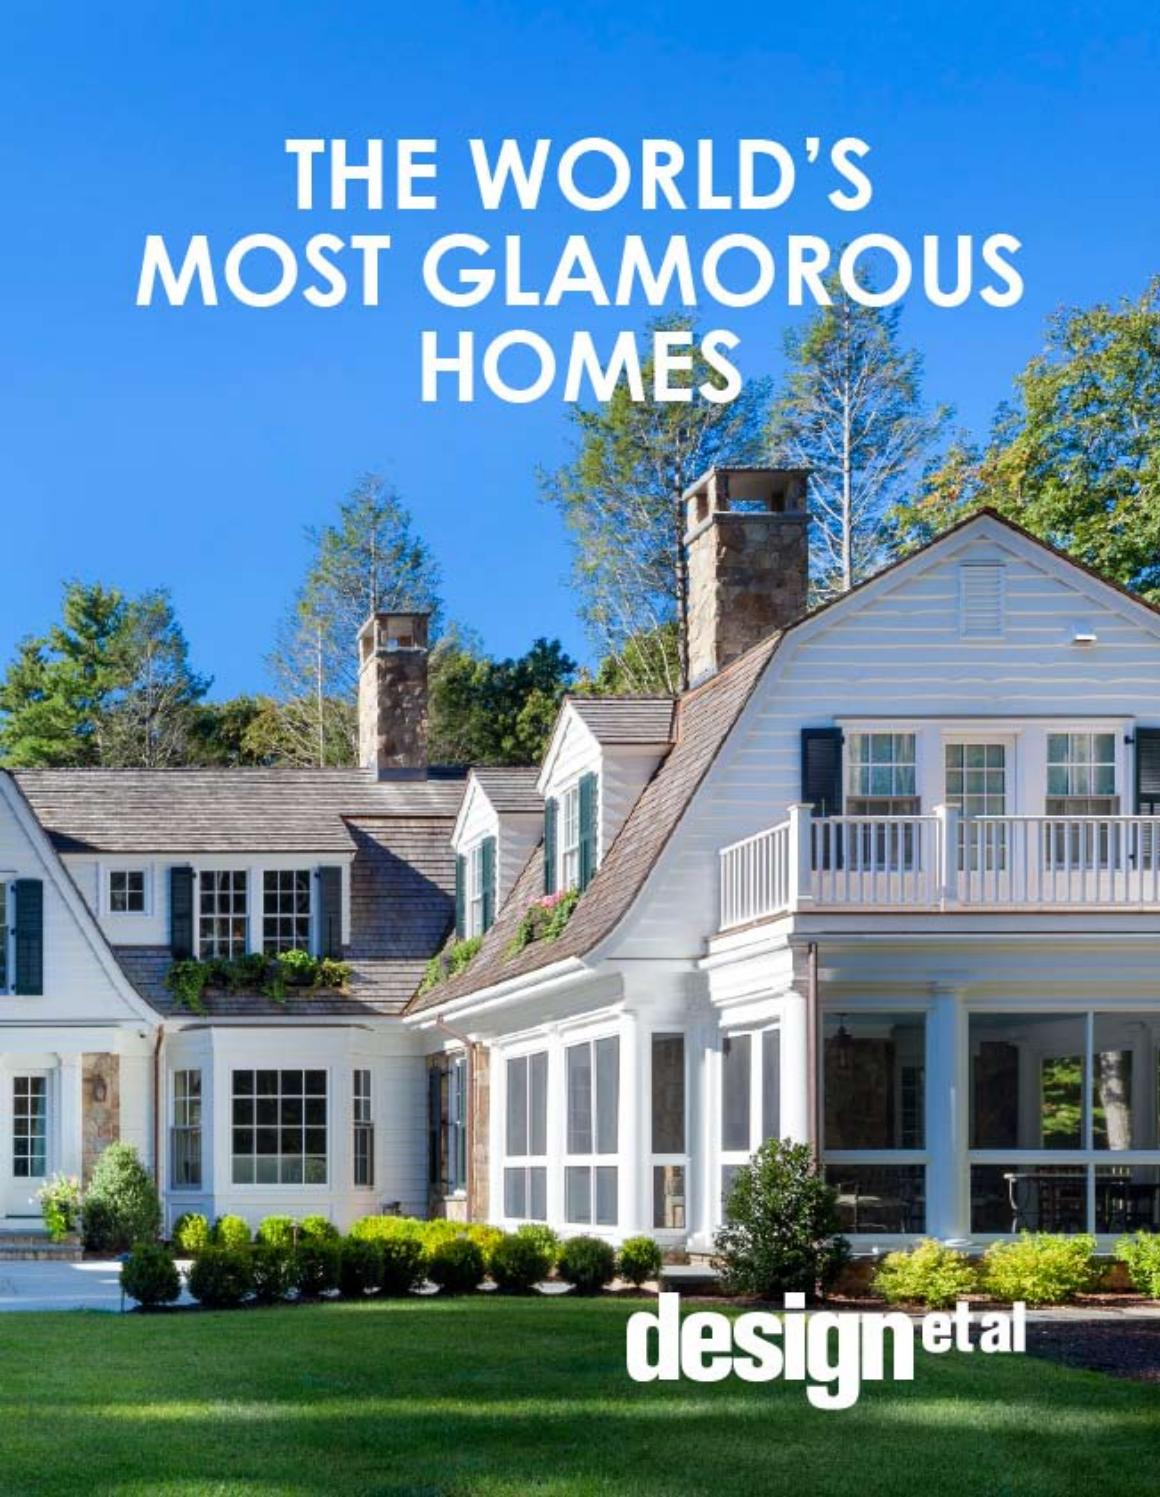 The worlds most glamorous homes by design et al issuu